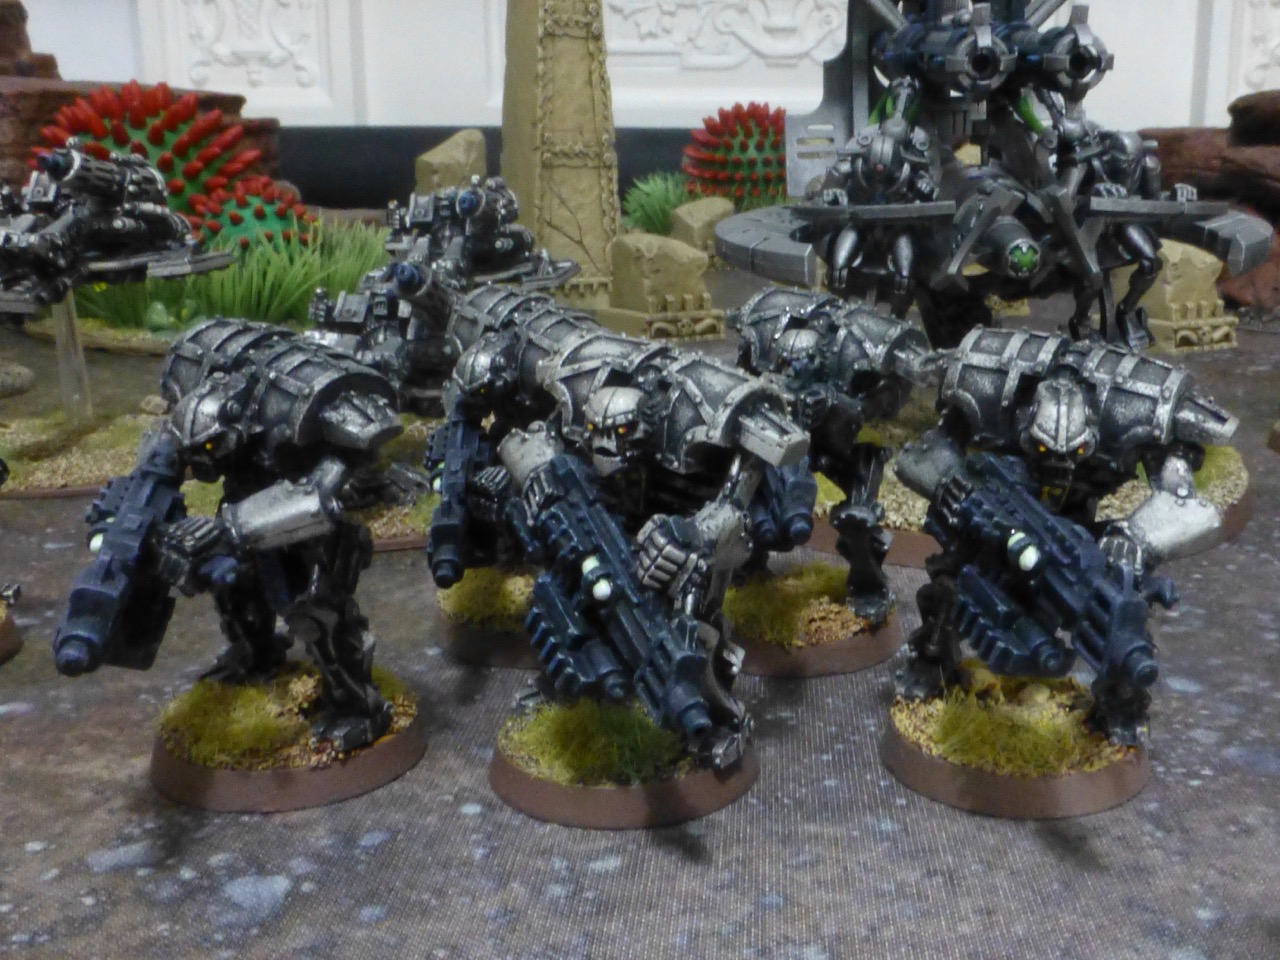 Bulky robotic warriors carrying heavy guns